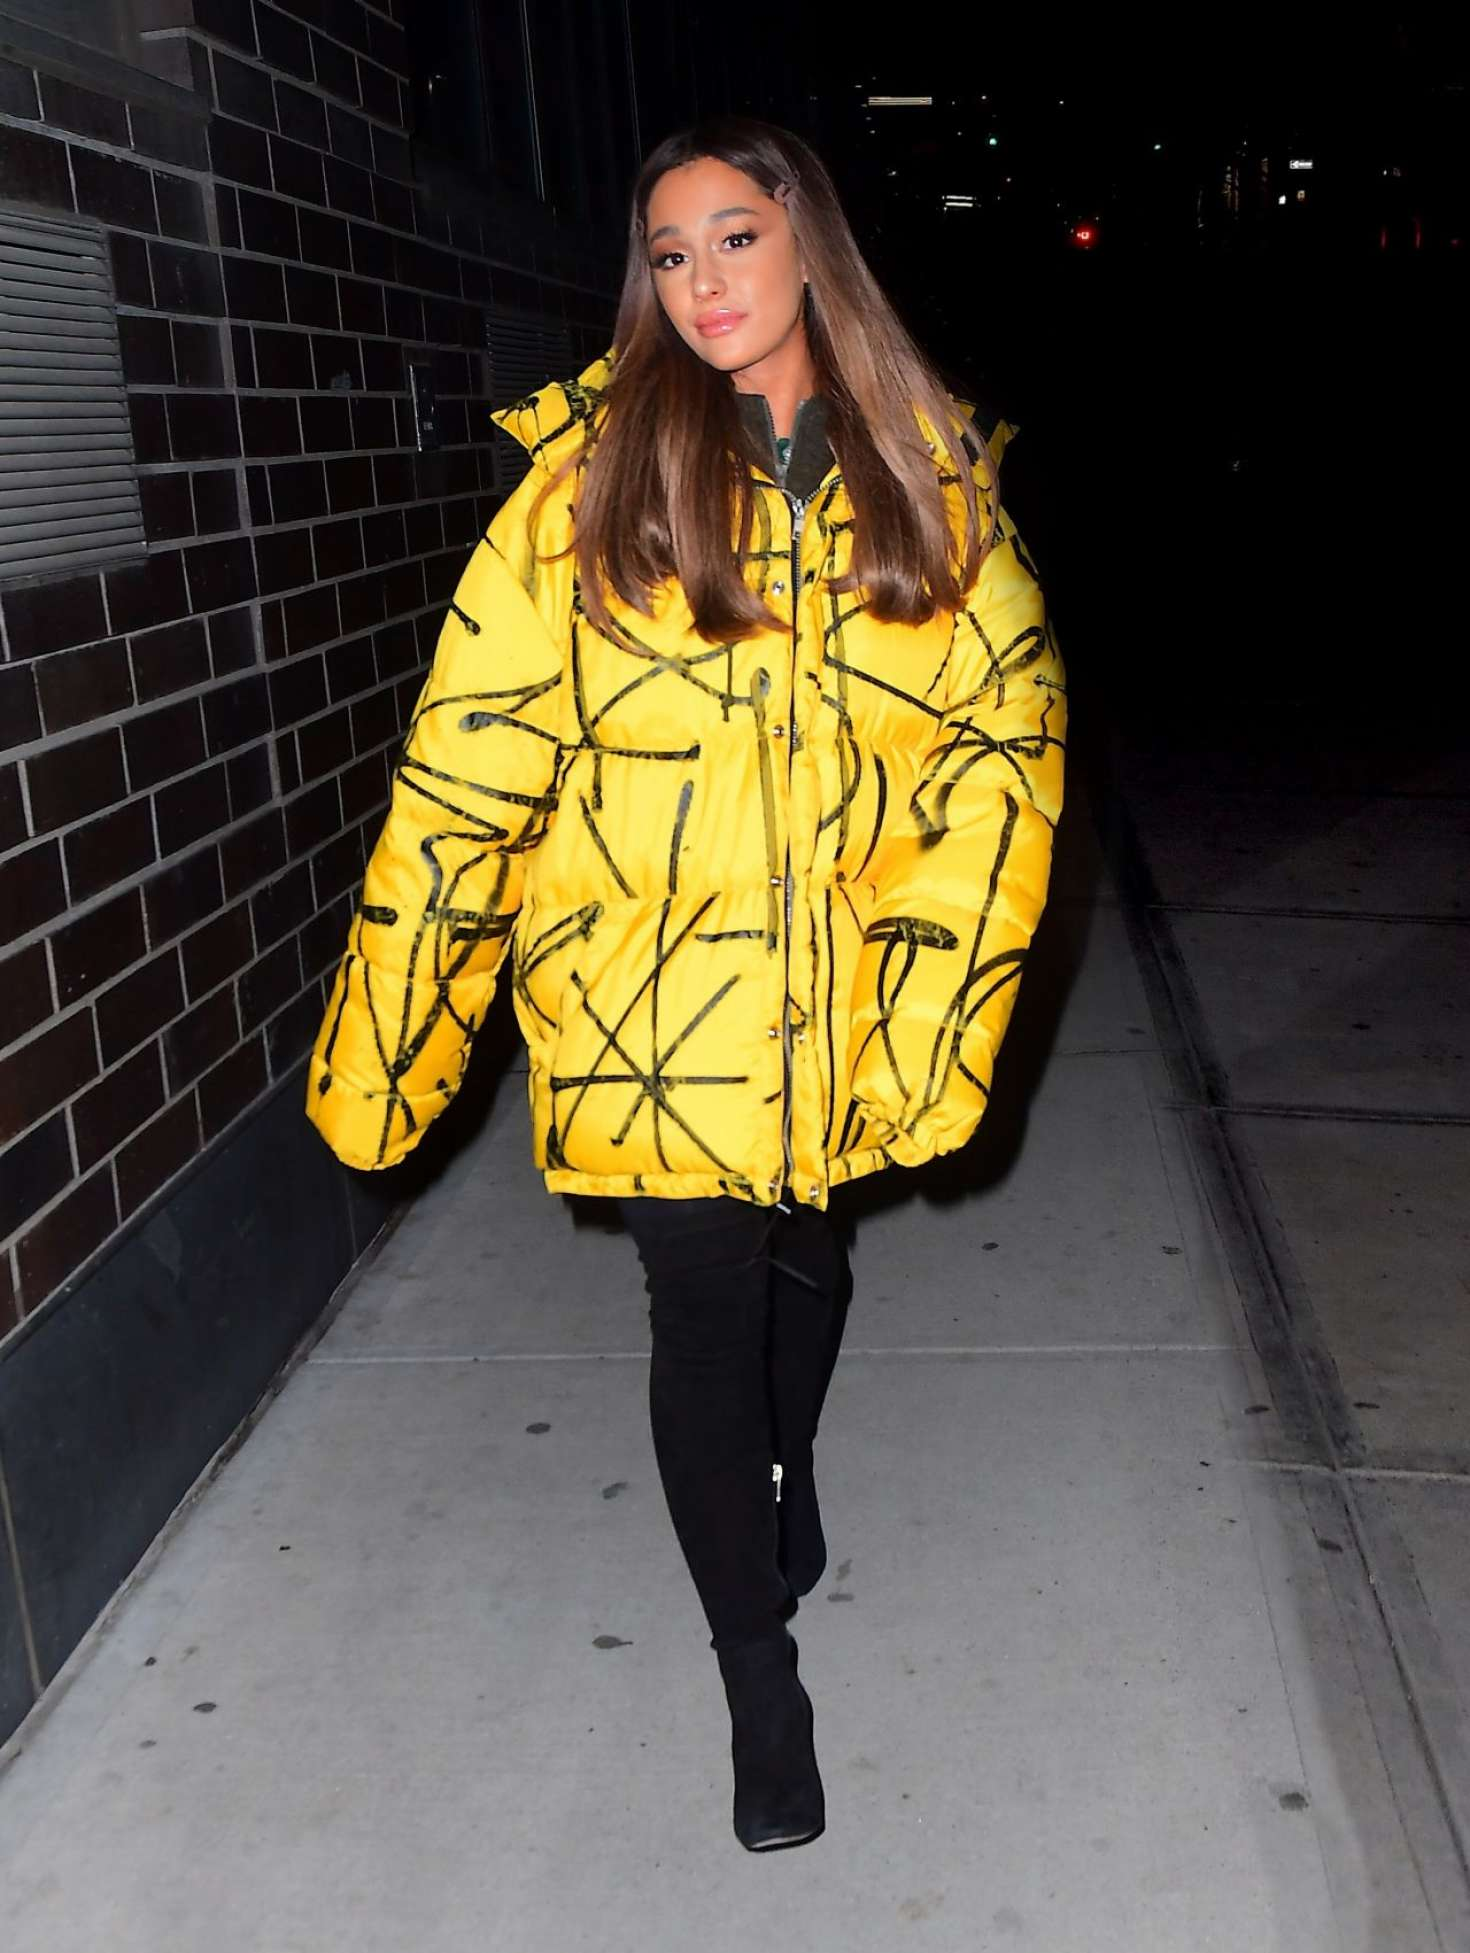 Ariana Grande in Yellow Jacket - Out and about in NYC